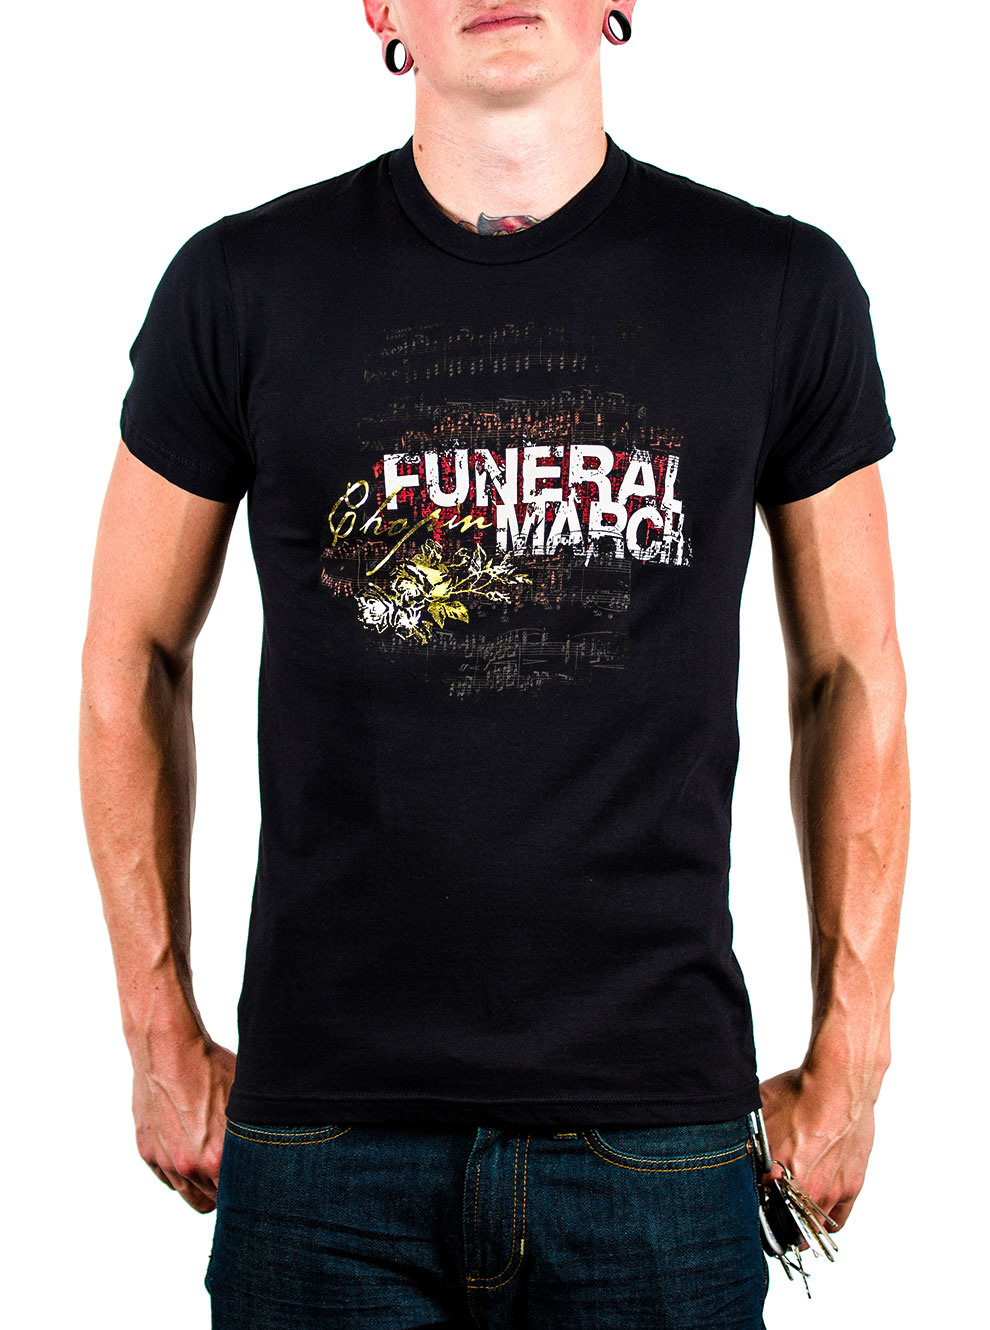 Chopin Funeral March T-shirt image